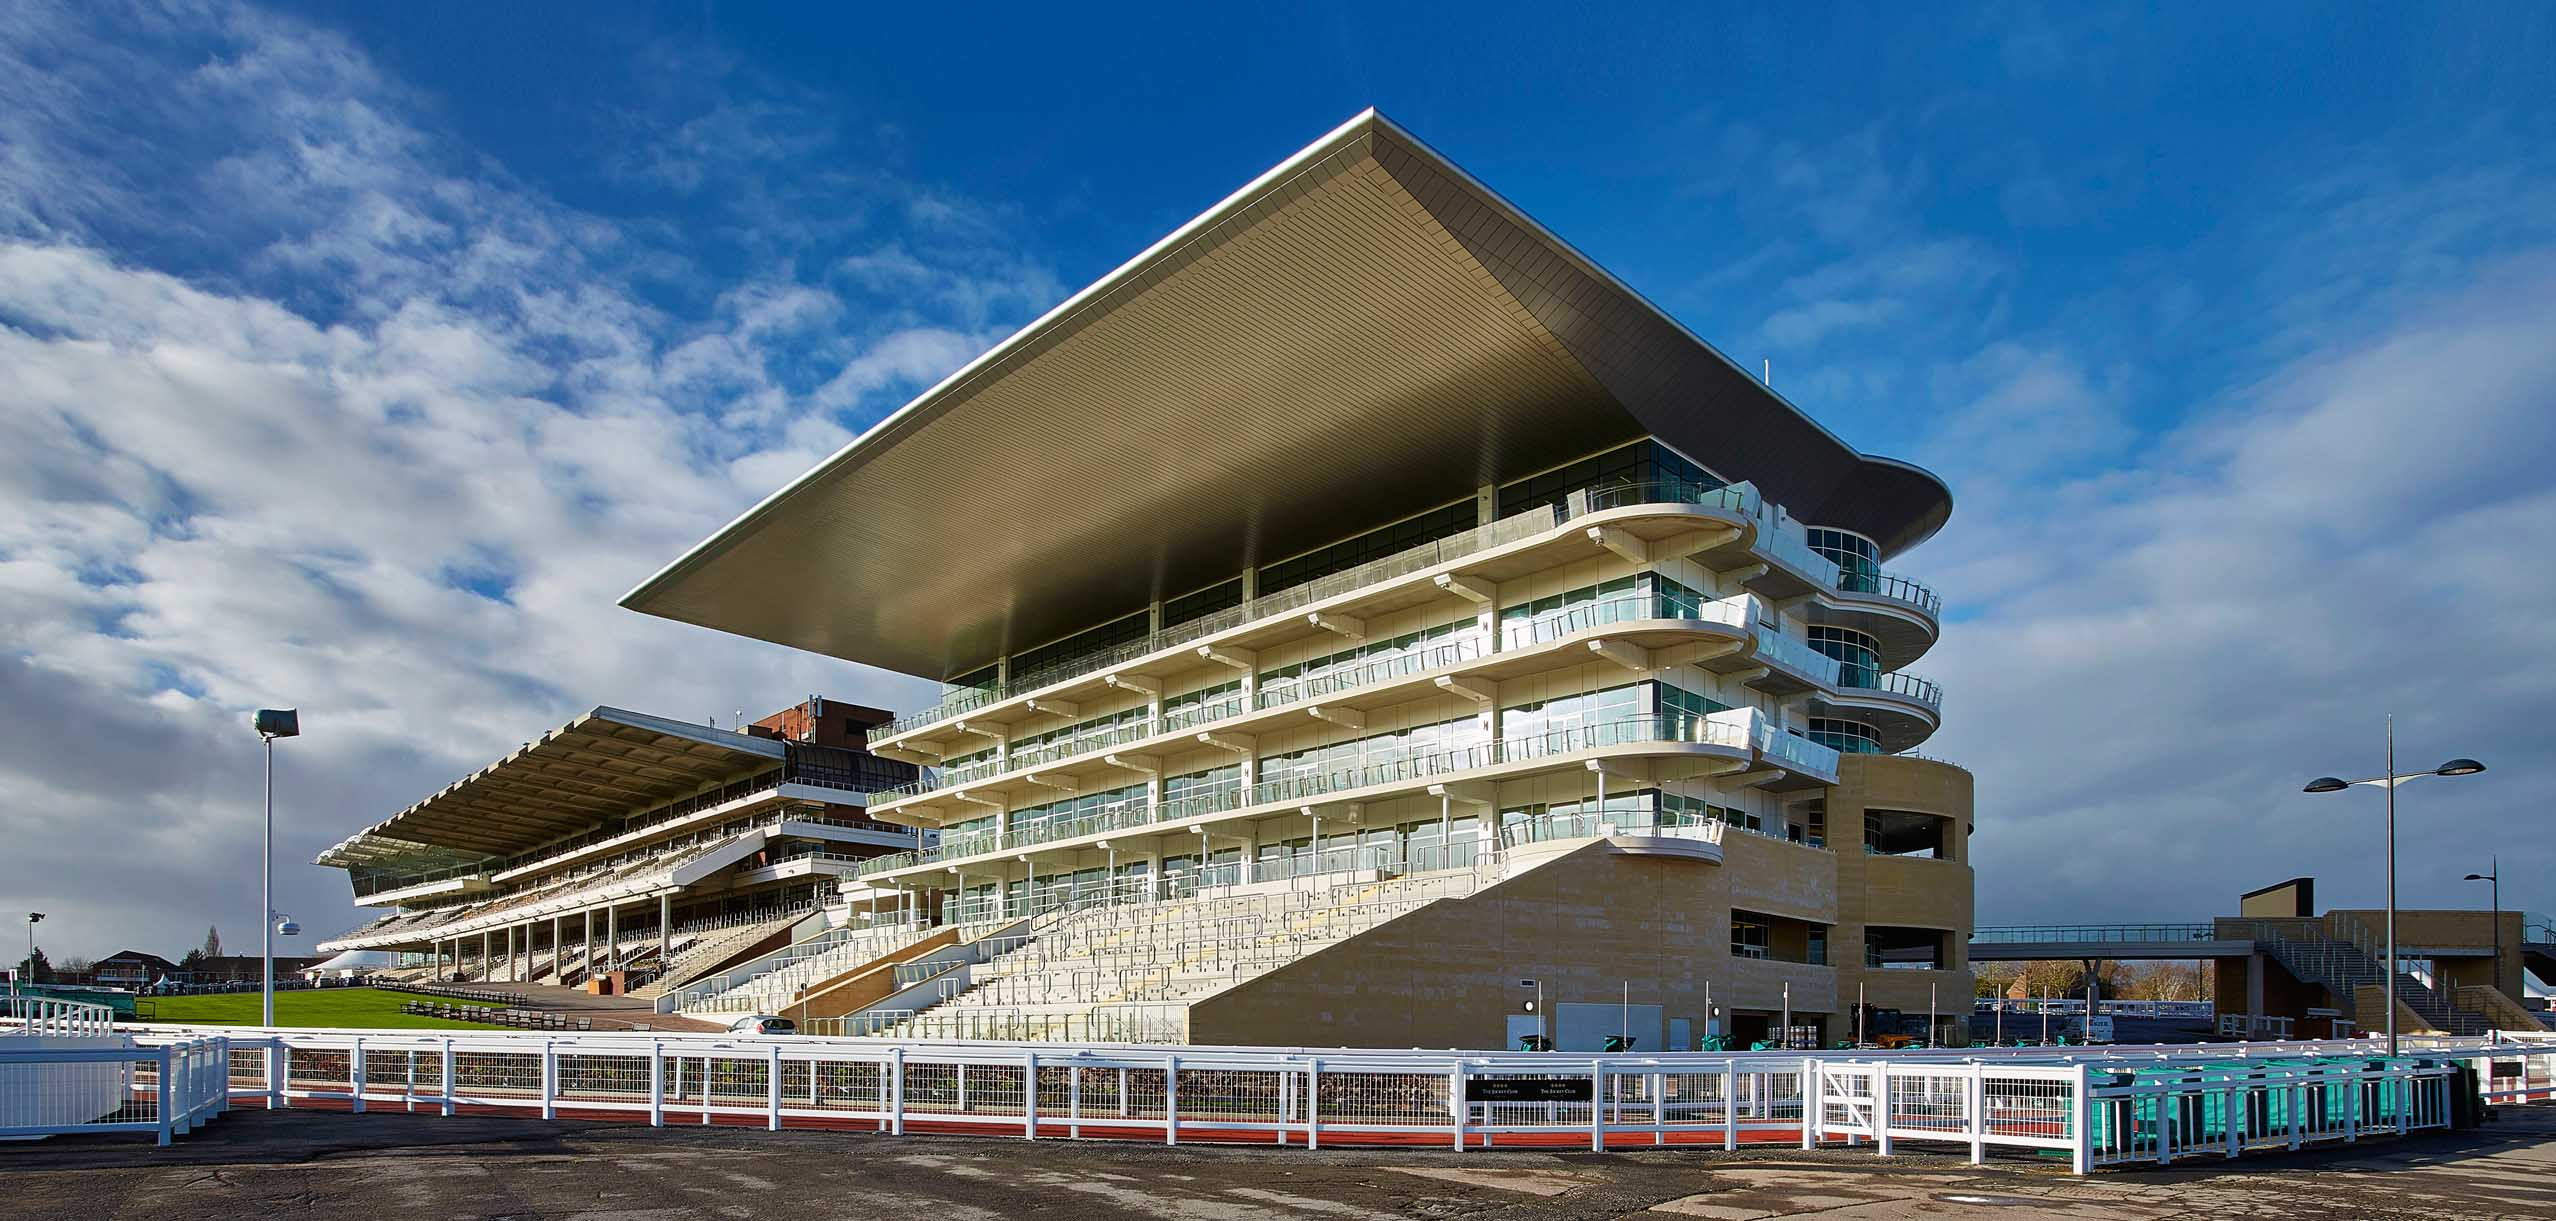 Cheltenham Racecourse Grandstand Roofing Amp Cladding Kovara Projects Ltd